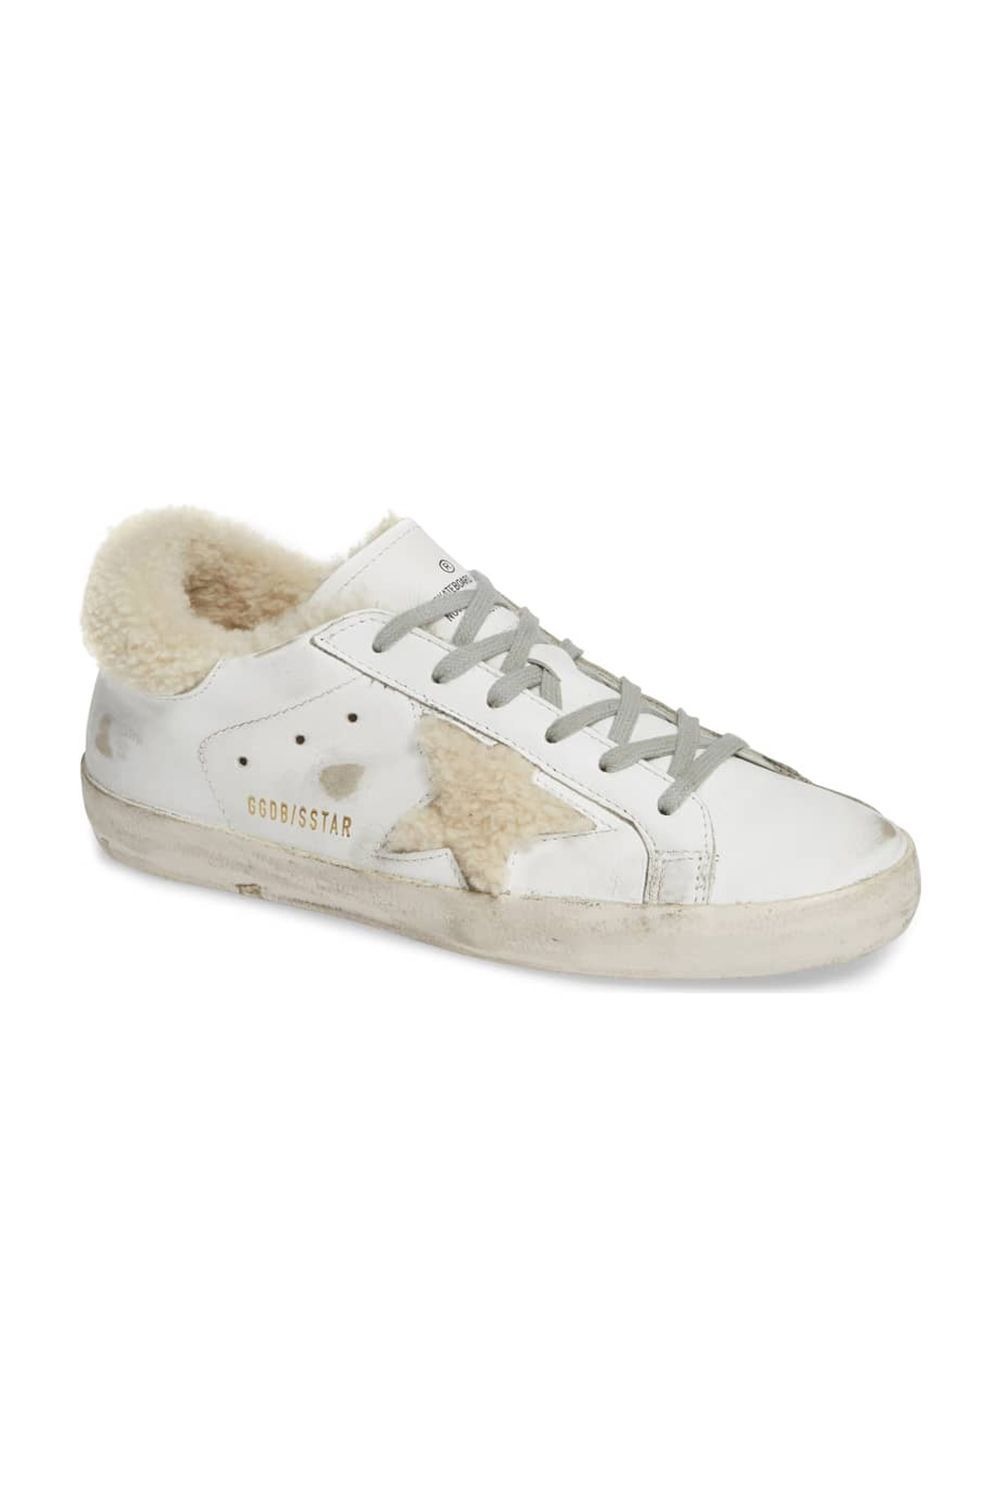 Superstar Genuine Shearling Trim Sneaker Golden Goose nordstrom.com $585.00 SHOP IT The addition of shearling to a white sneaker is genius. Your foot will